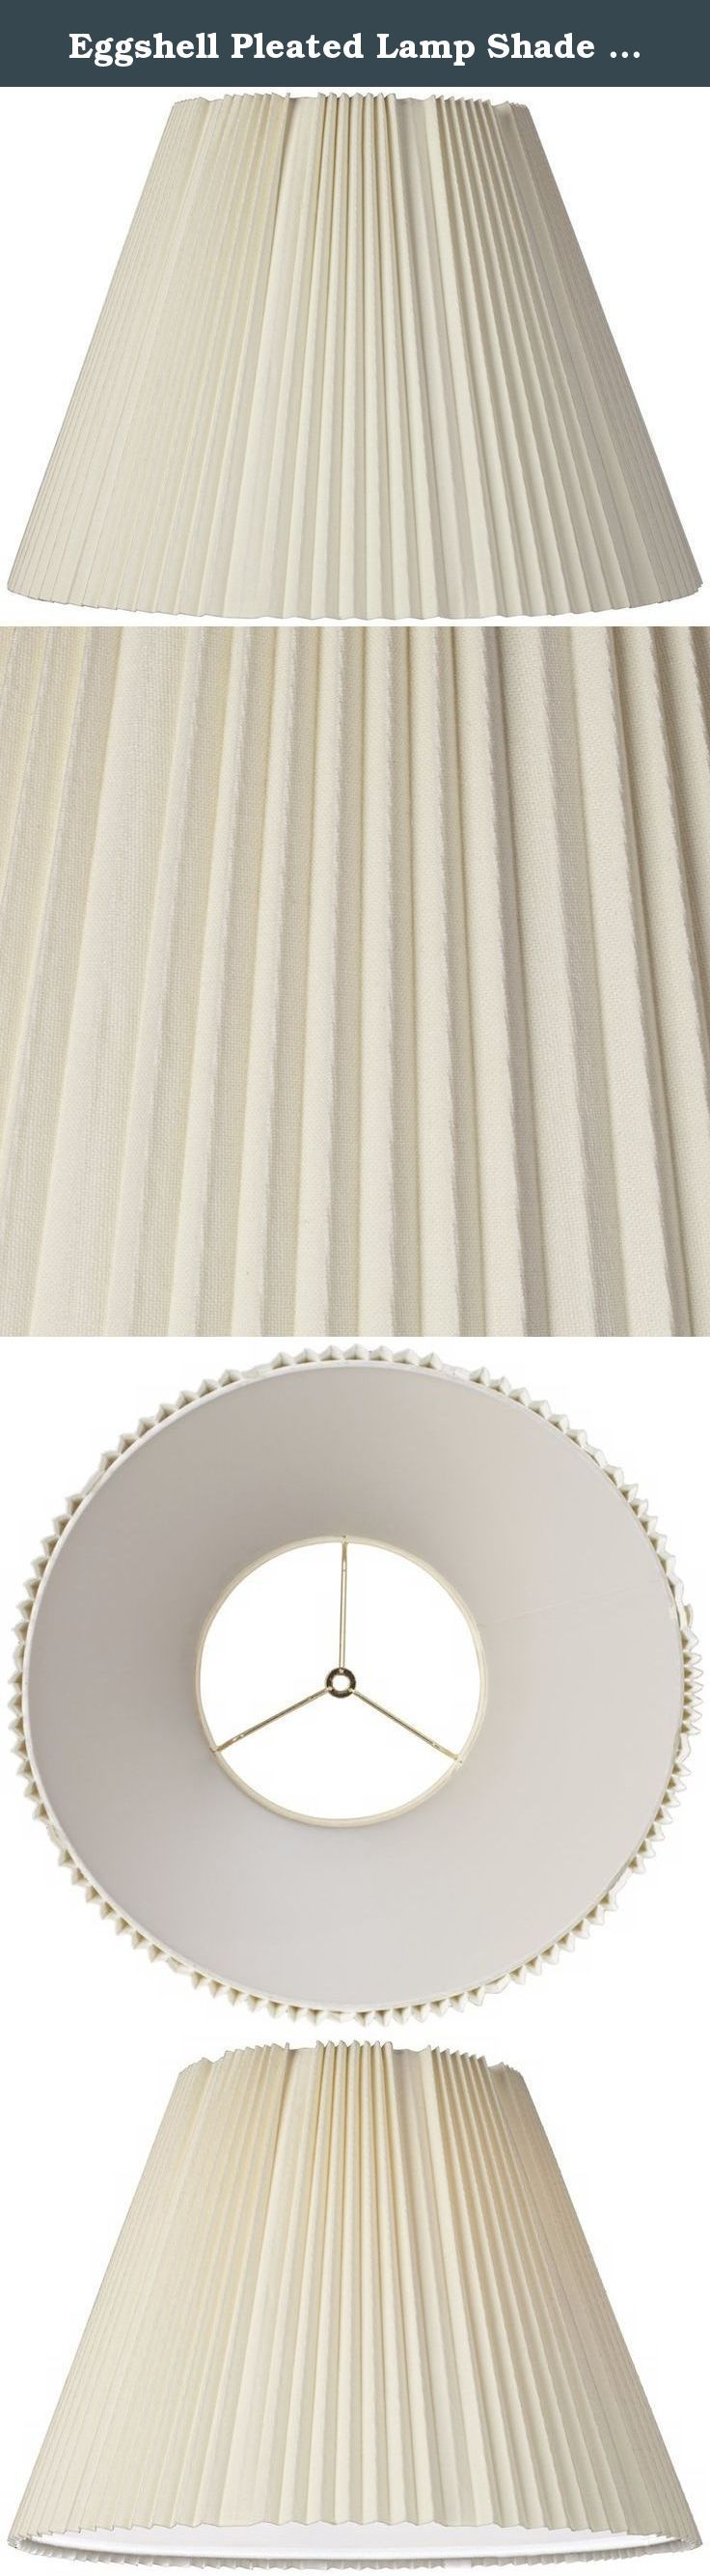 """Eggshell Pleated Lamp Shade 9x17x12.25 (Spider). A traditional lamp shade featuring detailed knife pleats. Delicate eggshell color creates a soft glow. A perfect touch for your home decor. Spider fitting. Polished brass finish spider. The correct size harp is included free with this shade. - Eggshell colored shade. - Cotton and polyester blend fabric. - Unlined. - Spider fitting. - Knife pleating, - Polished brass finish spider. - From the Brentwood collection of lamp shades. - 9"""" across…"""